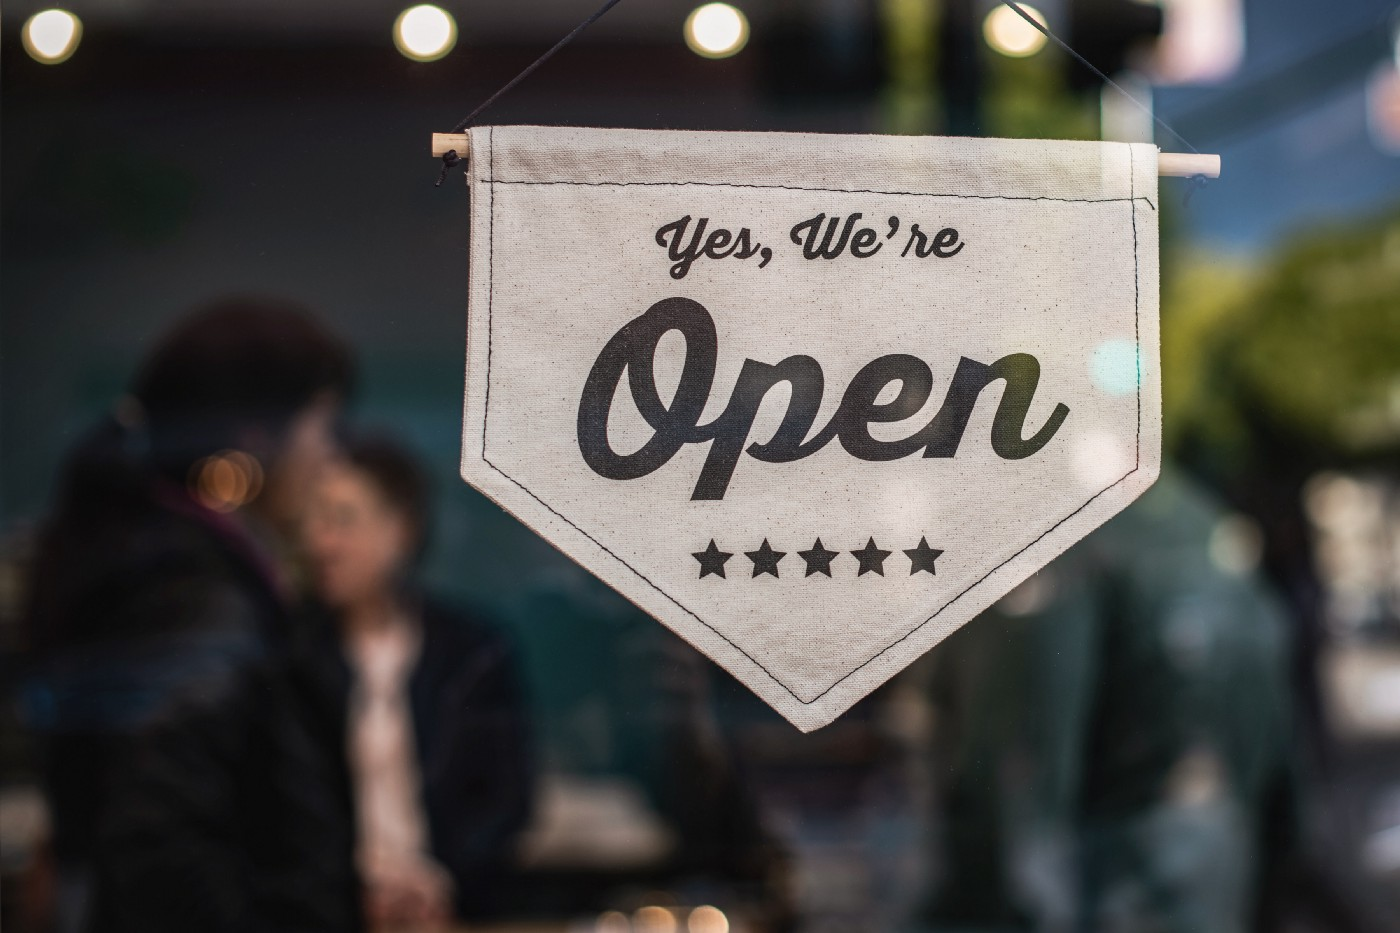 """Tan sign that says """"yes, we're open"""" in front of a blurred background."""